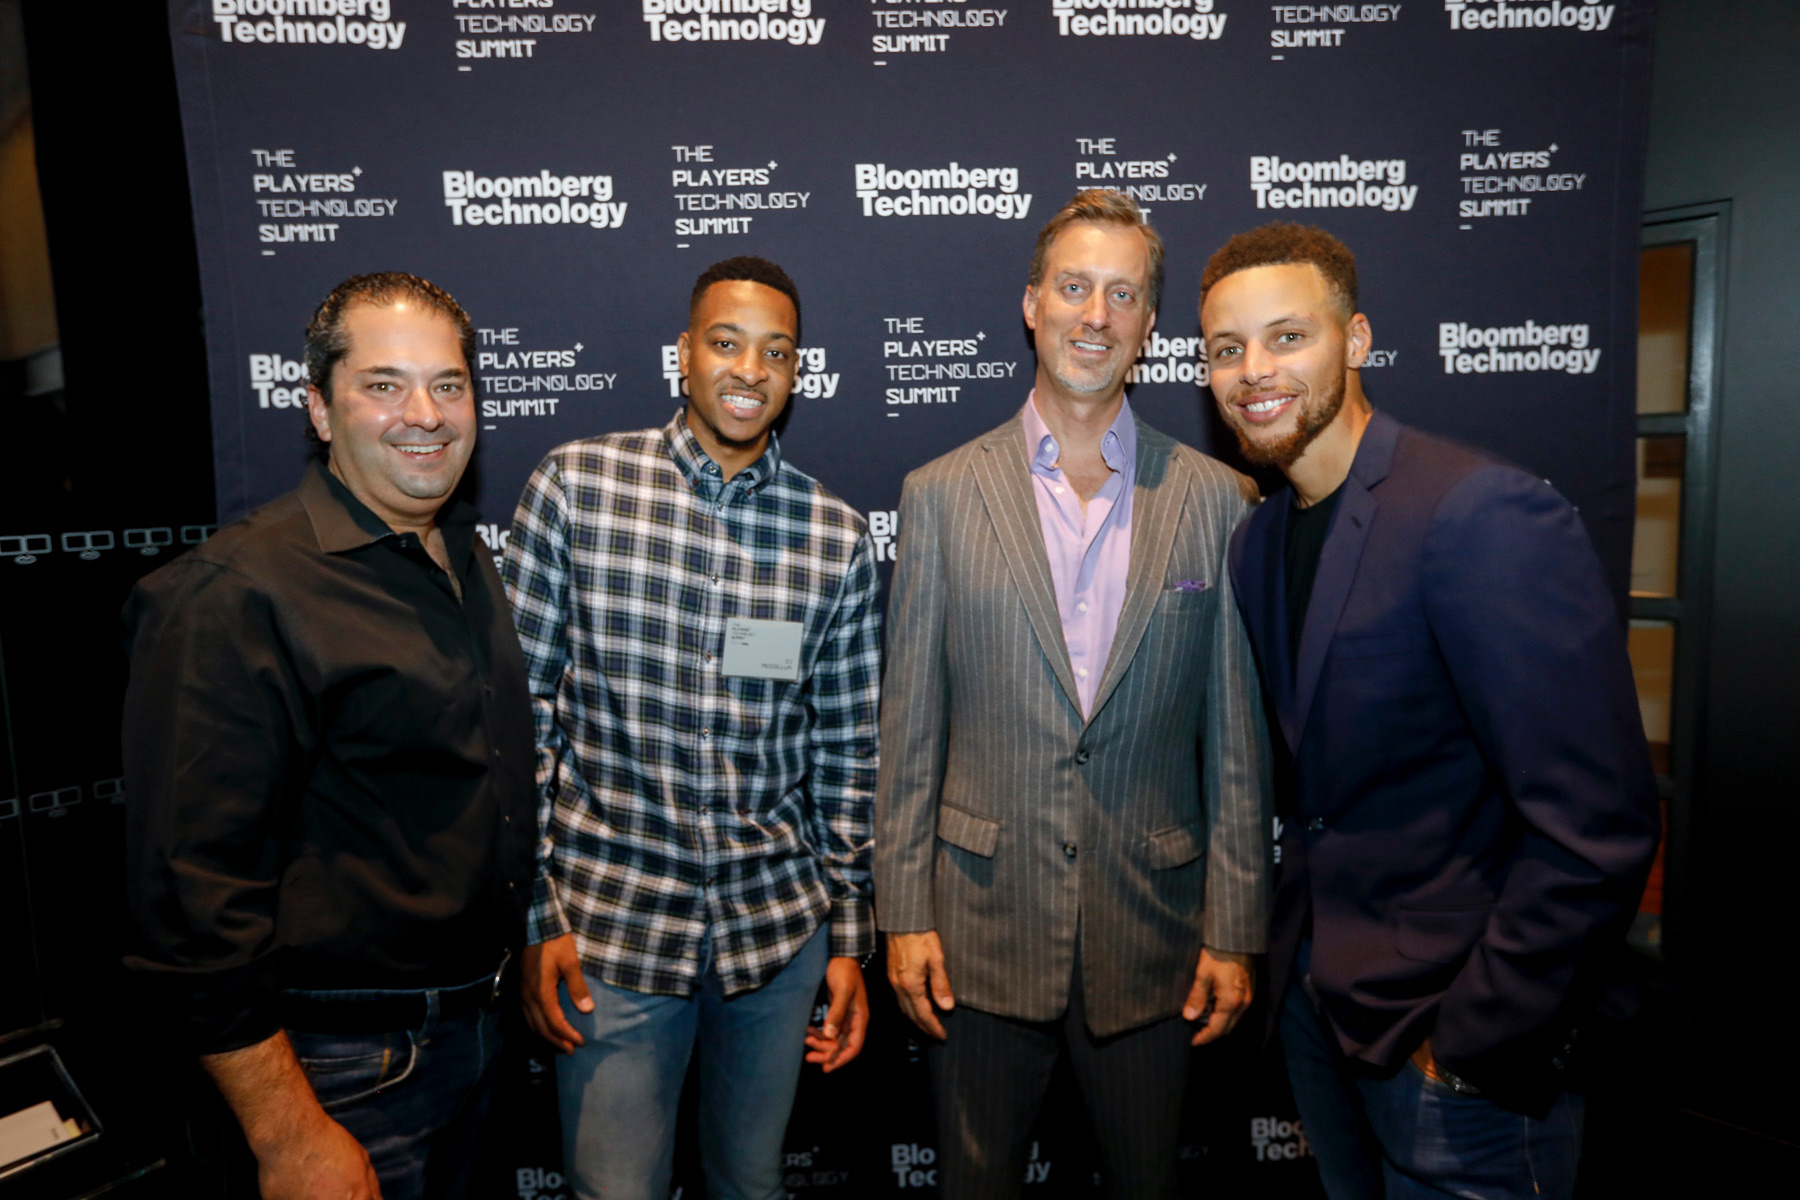 Wayne Kimmel, CJ McCollum, Cory Johnson and Stephen Curry